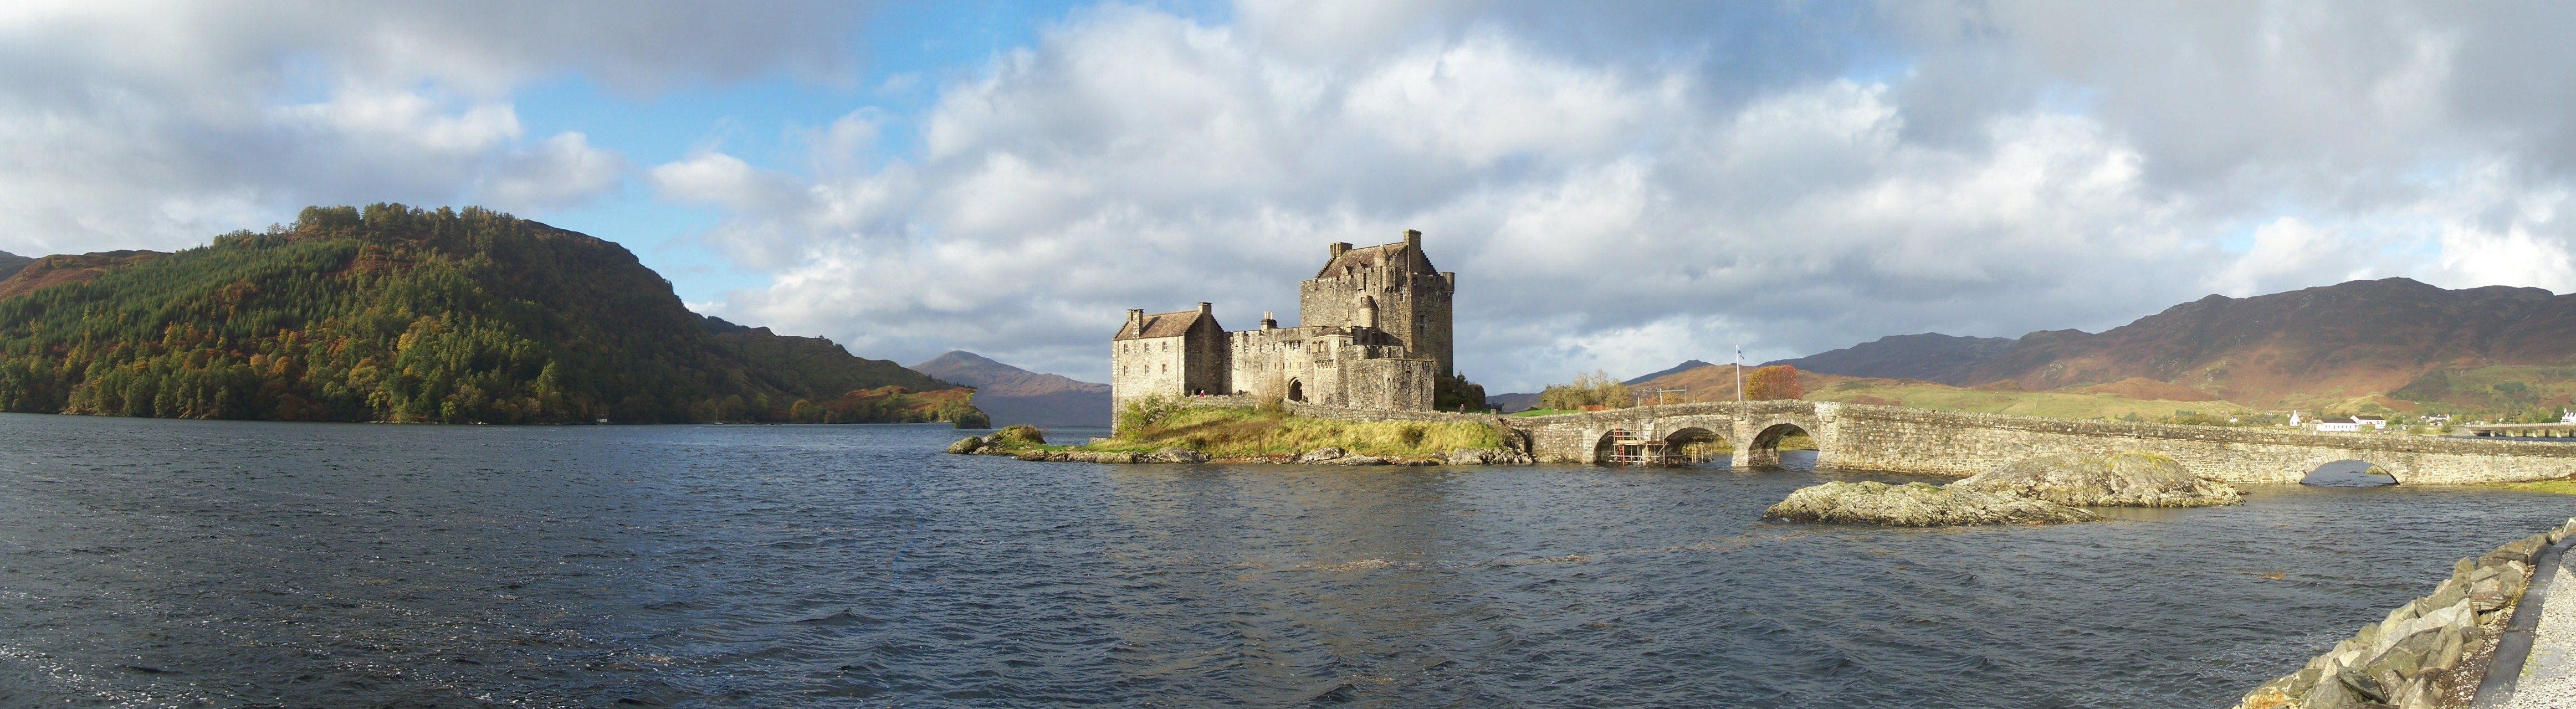 Lochs of Scotland Cruise from Edinburgh